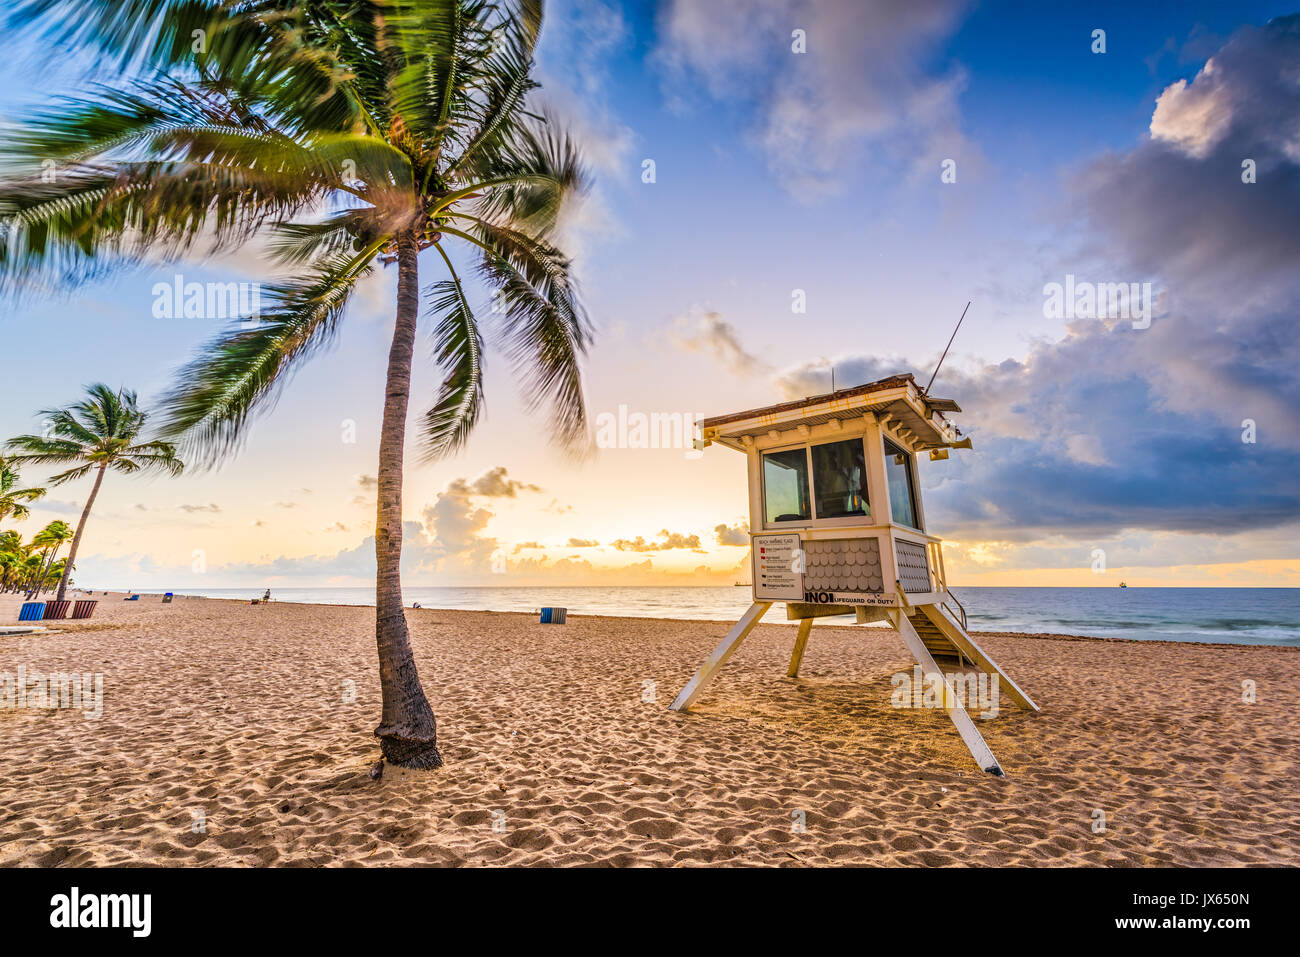 Strand von Fort Lauderdale, Florida, USA. Stockbild